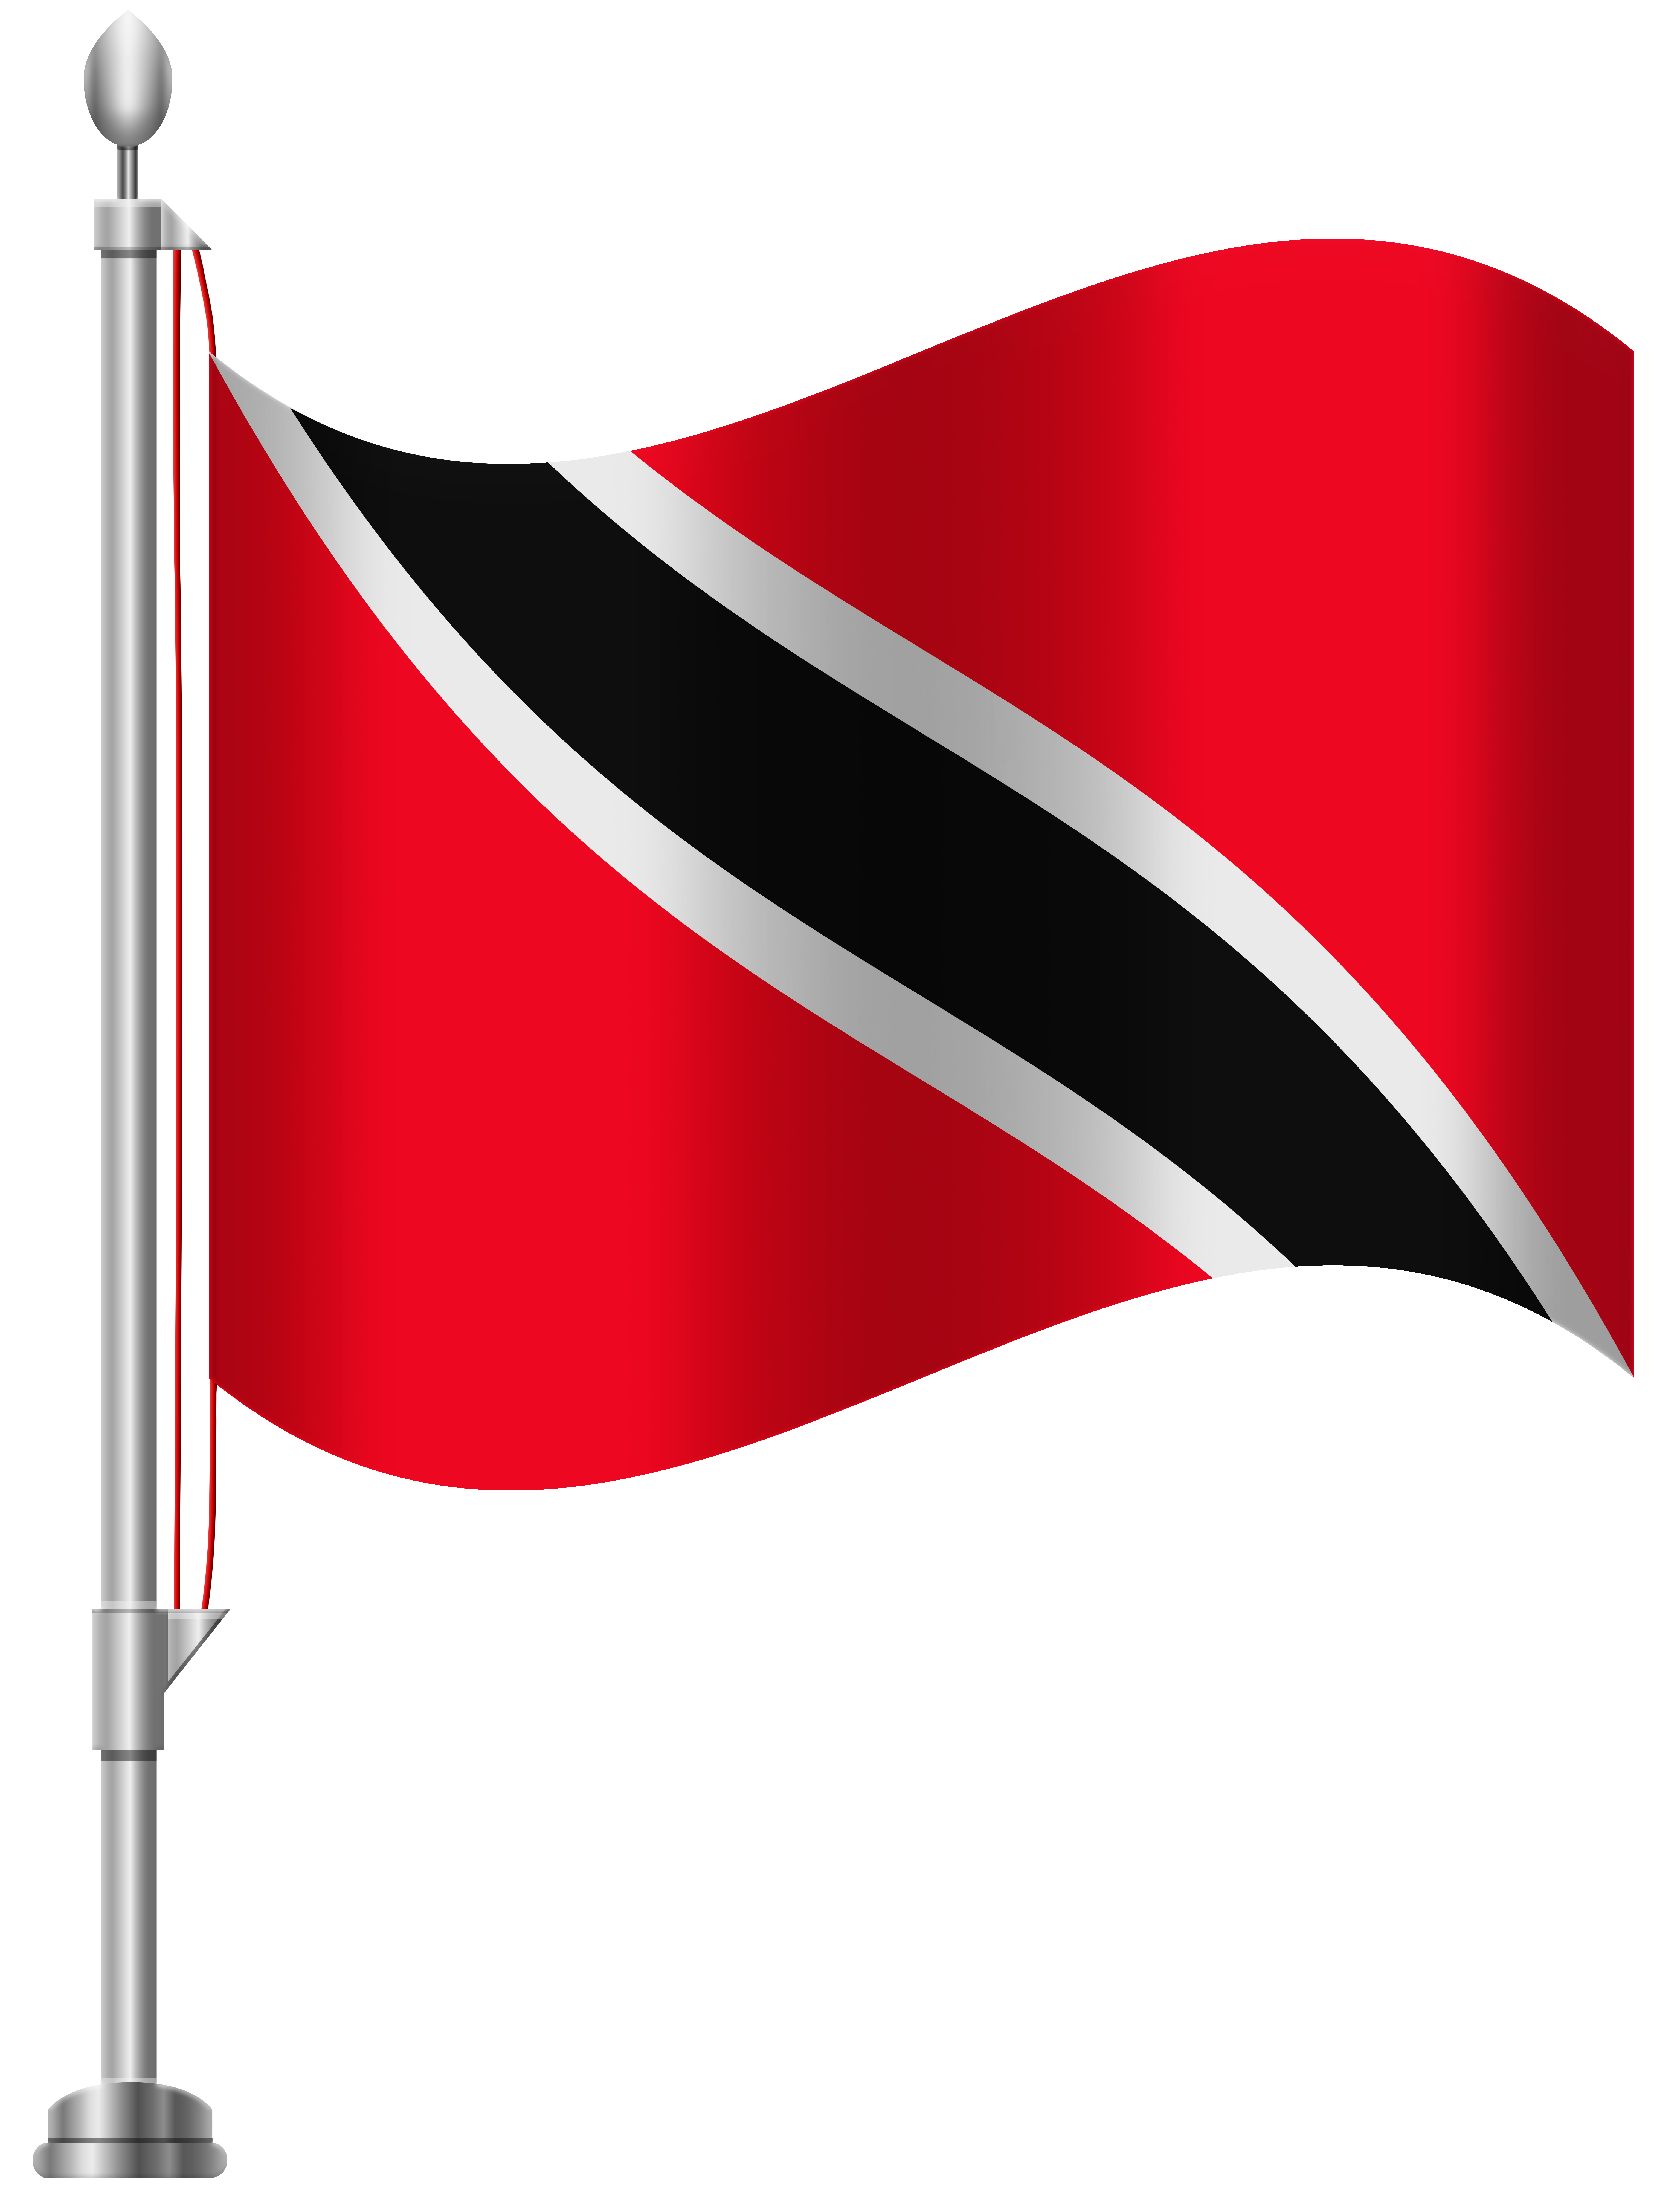 Tobago clipart jpg black and white download Trinidad and Tobago Flag PNG Clip Art - Best WEB Clipart jpg black and white download